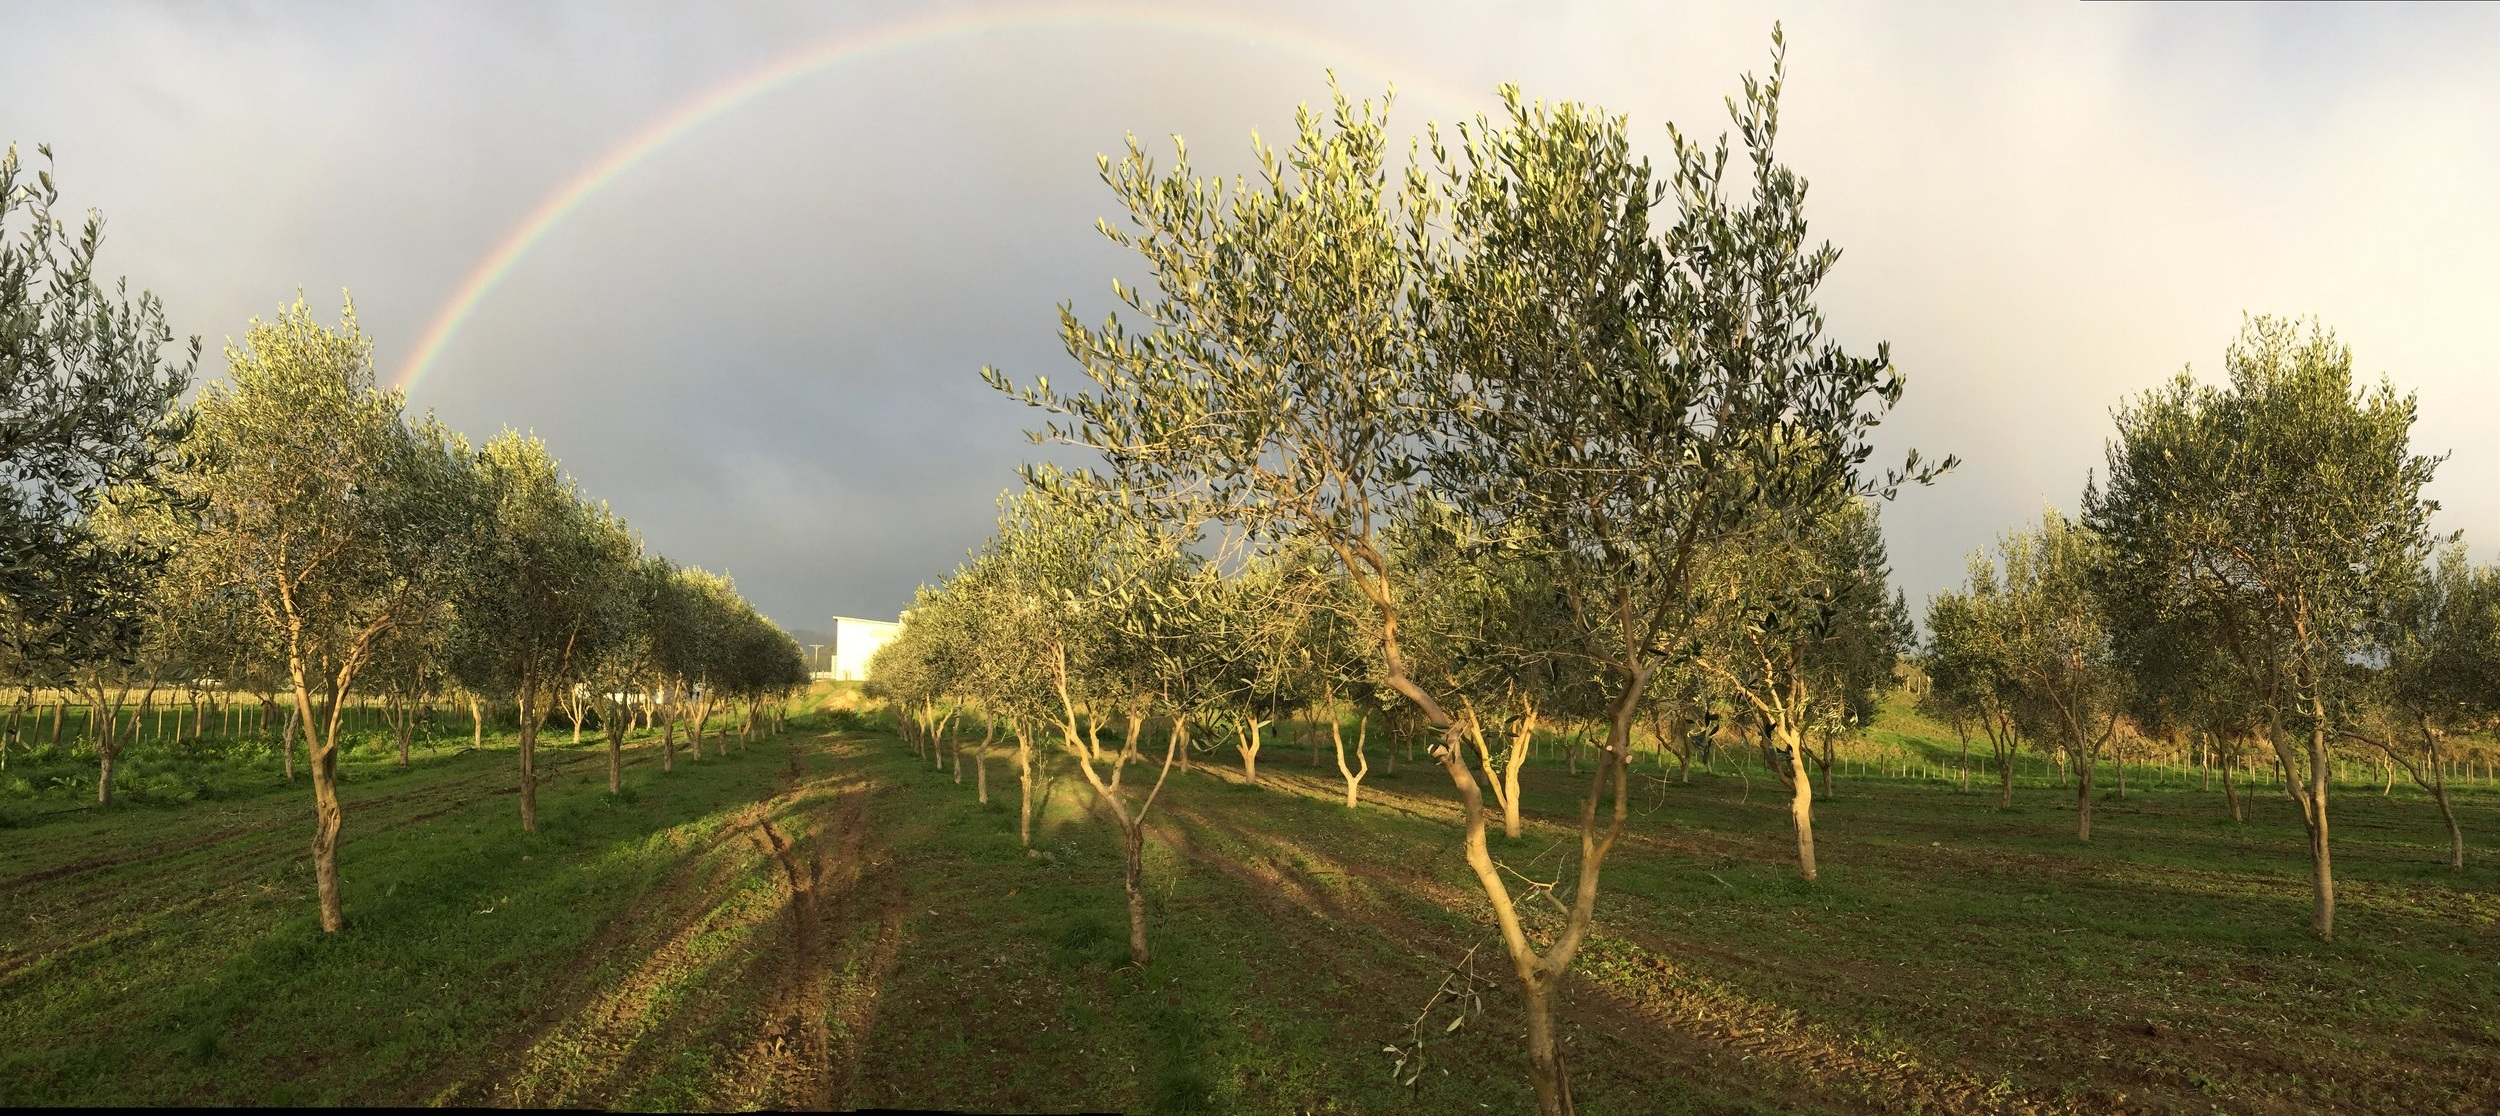 Rainbow over the olive grove, Kuku, 6 July. Image by Emma Febvre-Richards, 2019.